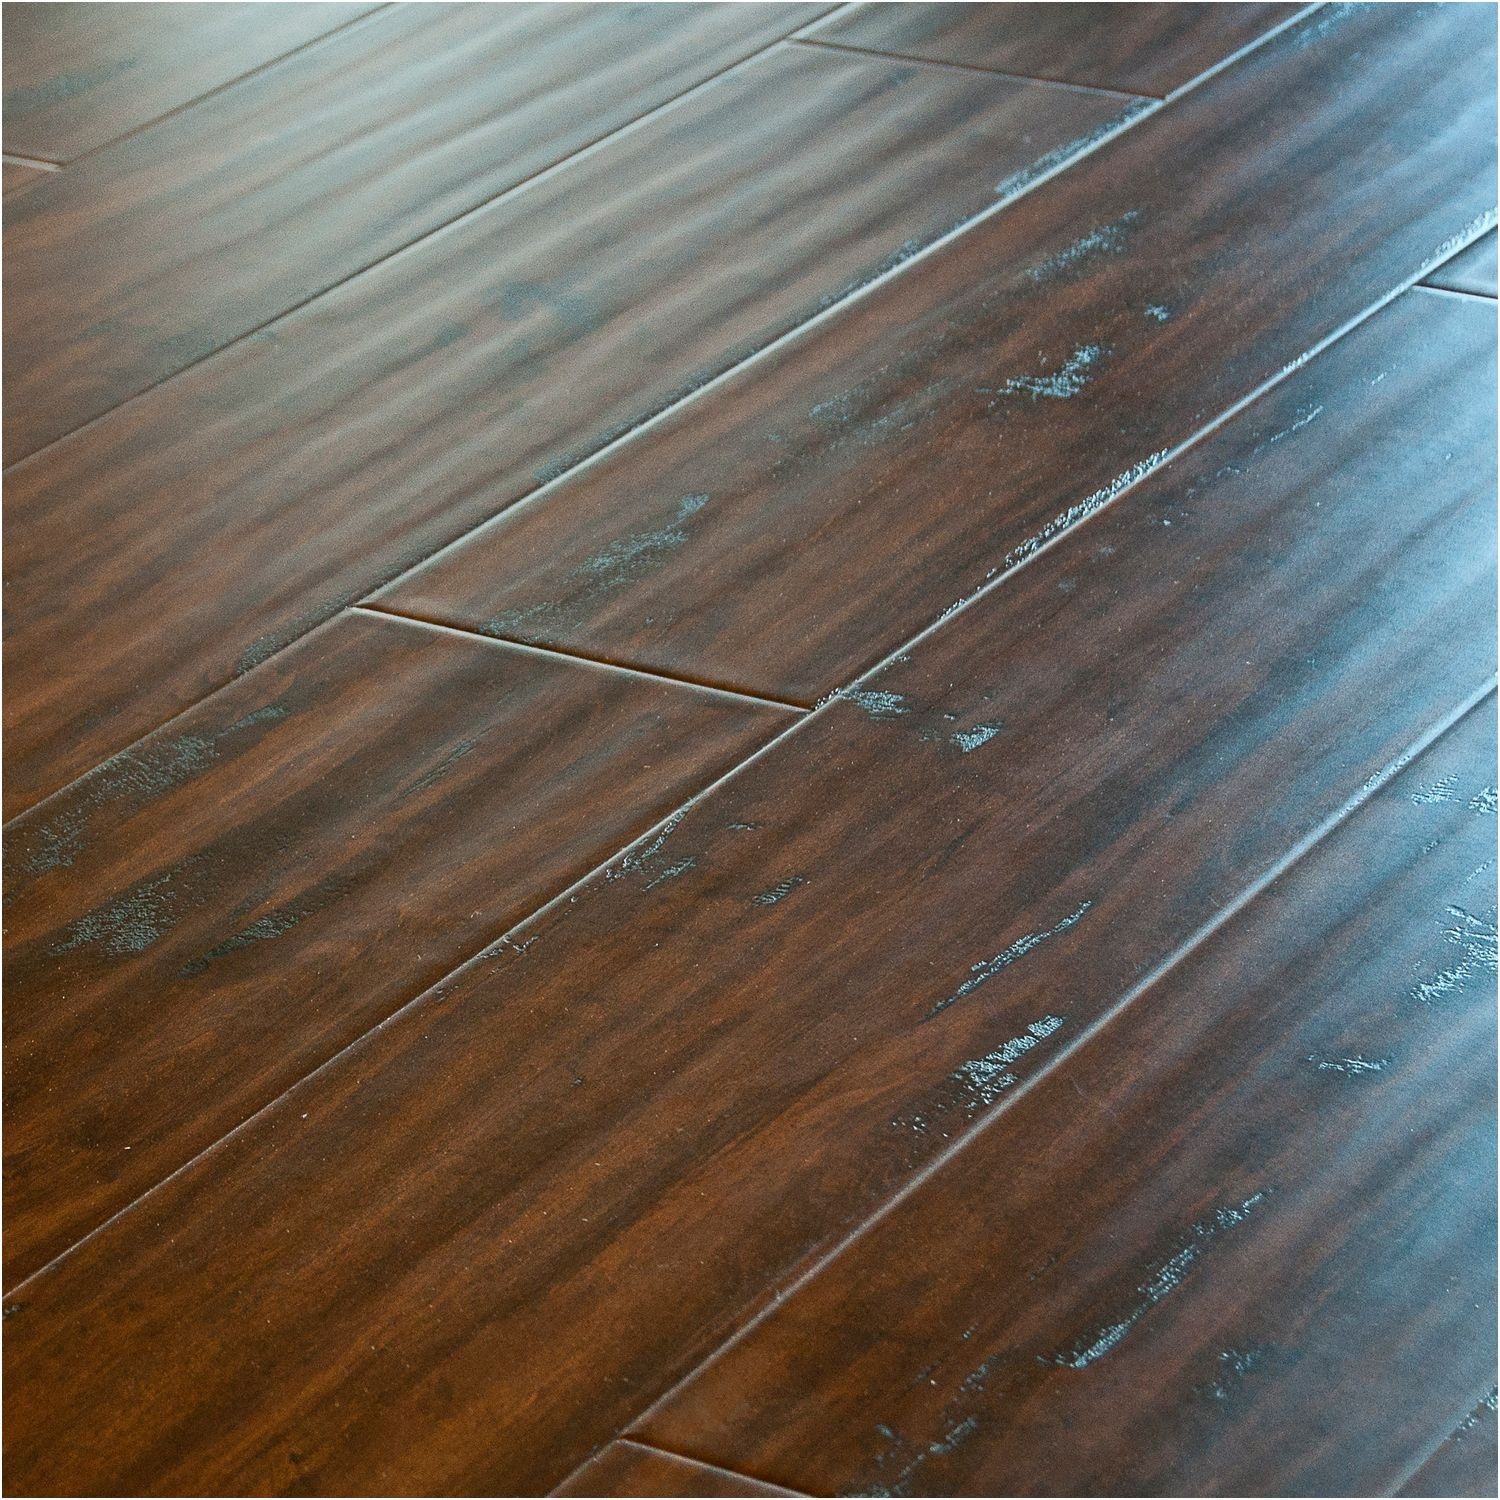 bamboo hardwood flooring costco of costco laminate wood flooring review best of select surfaces in costco laminate wood flooring review best of select surfaces laminate flooring reviews acai sofa